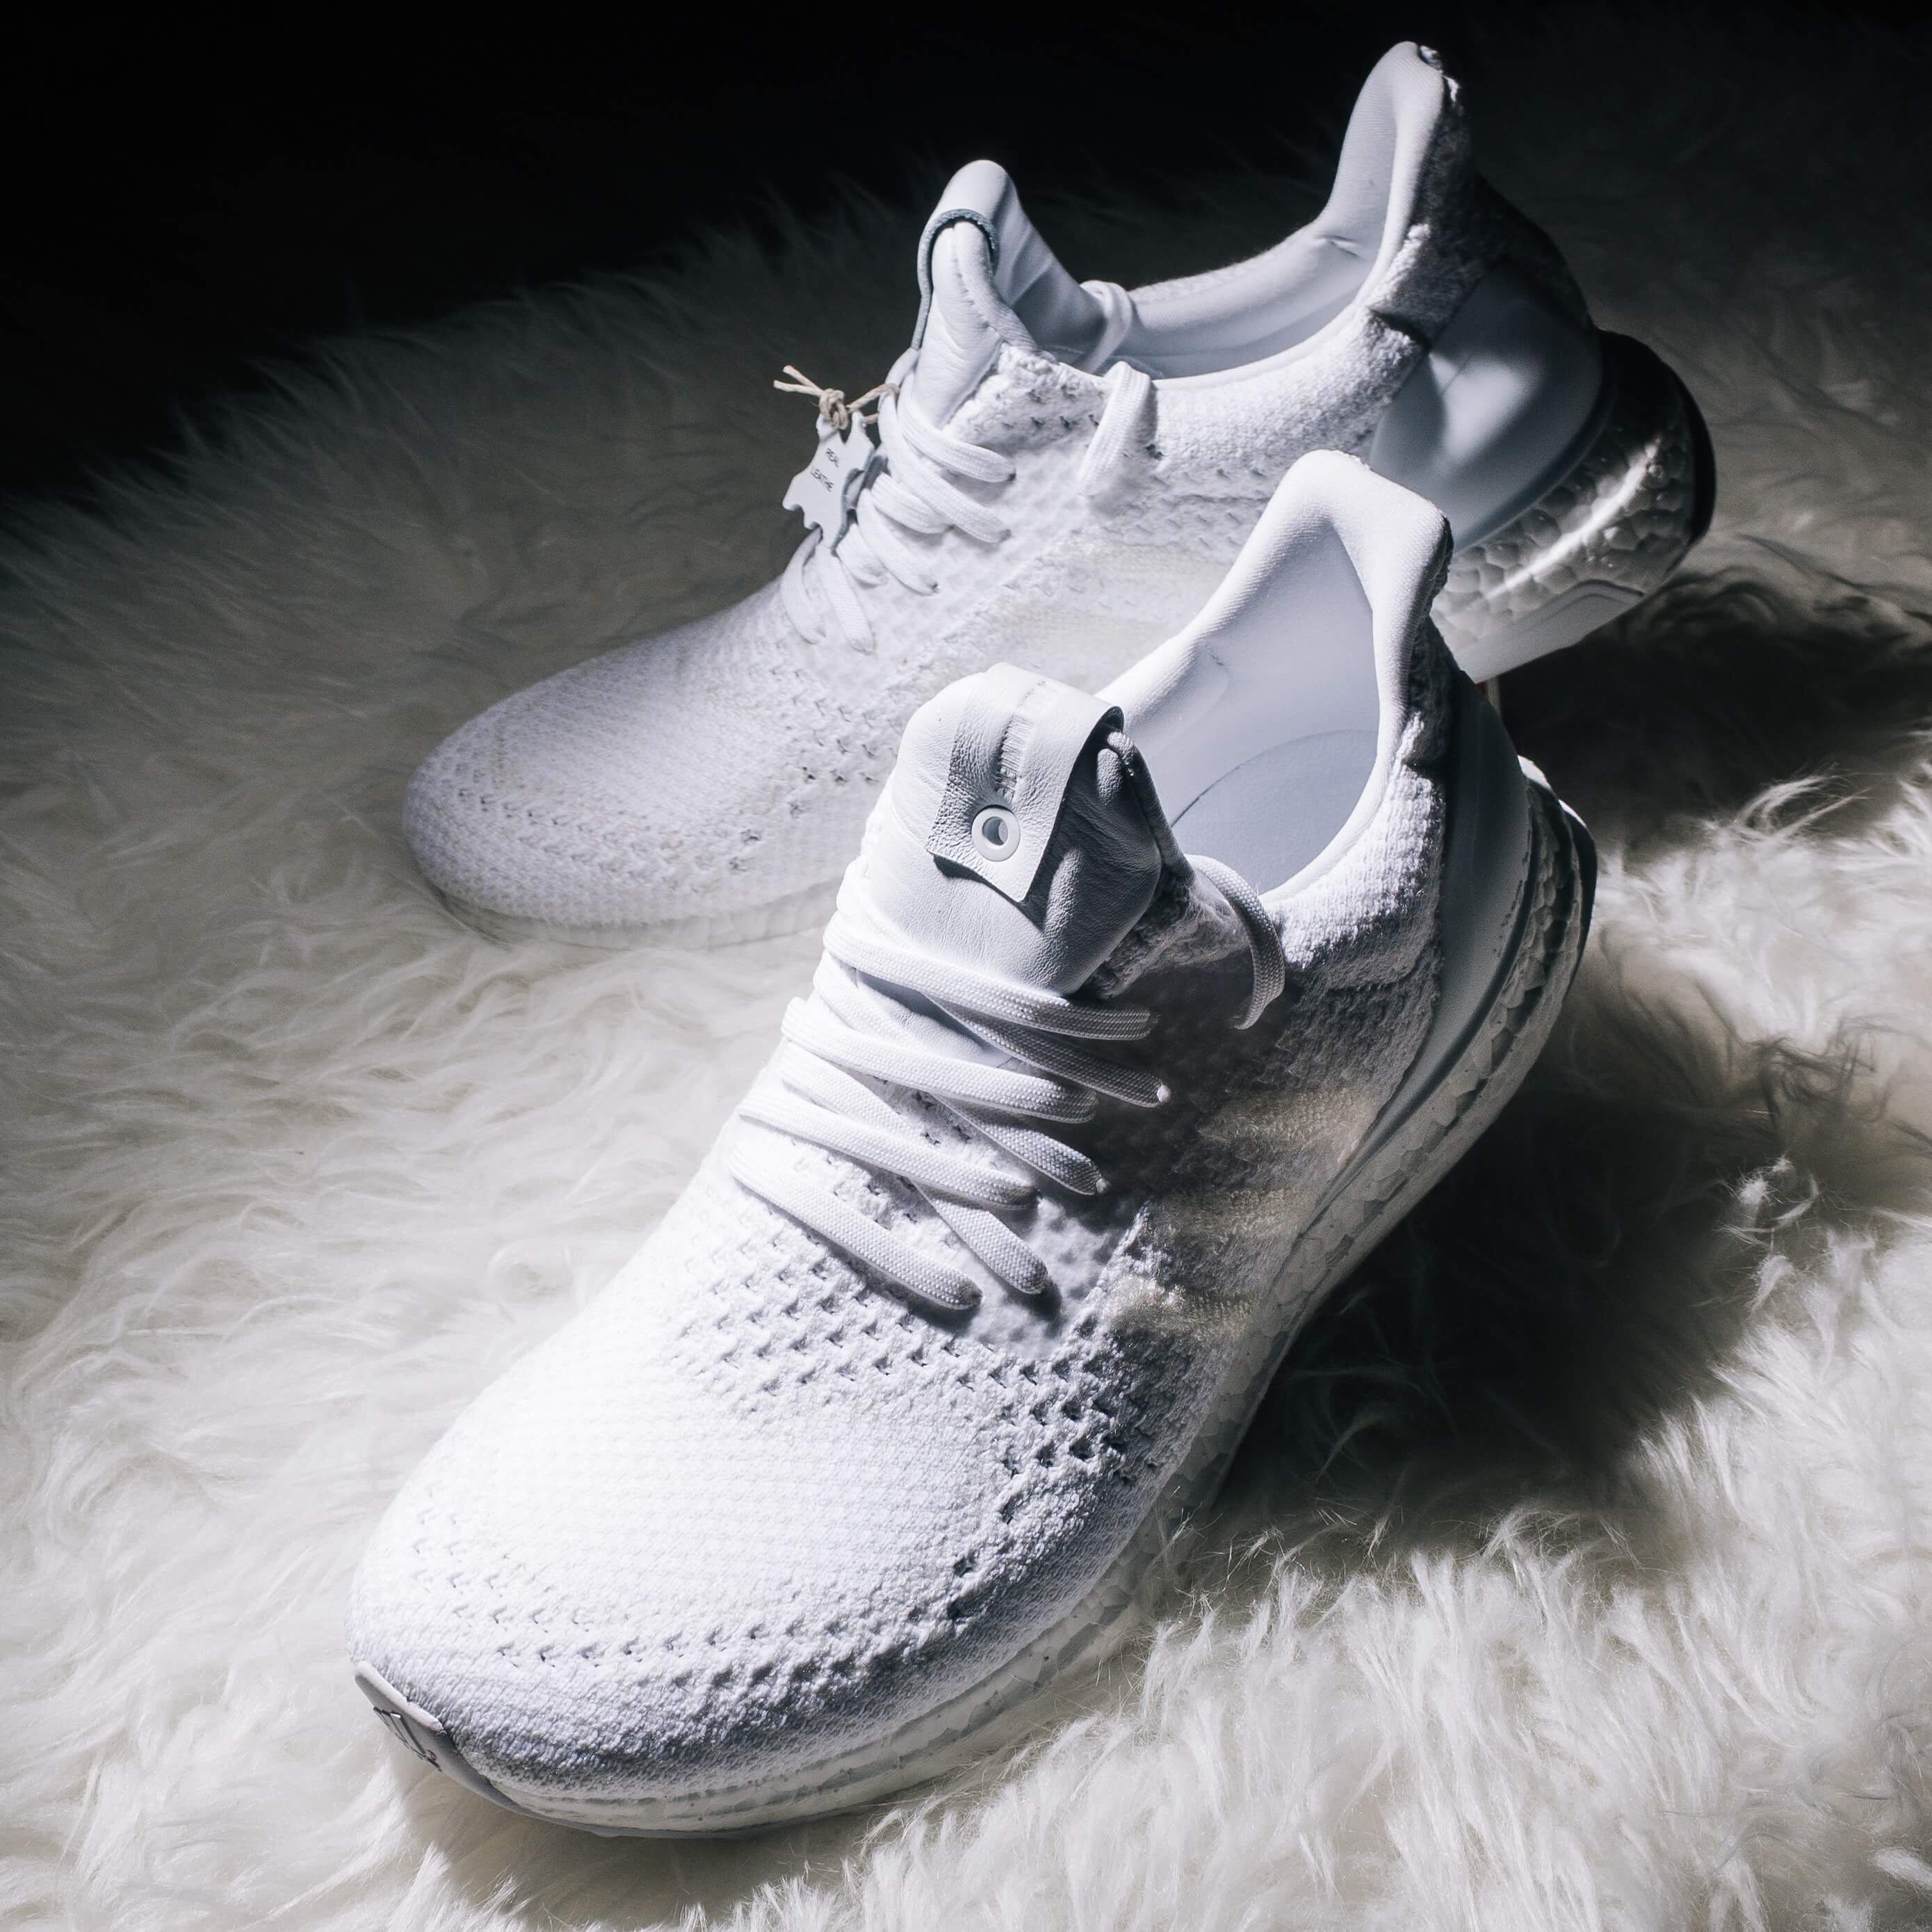 7dadd422d7805 Uk8 US8.5 A Ma Maniere X Invincible X Adidas ultra boost